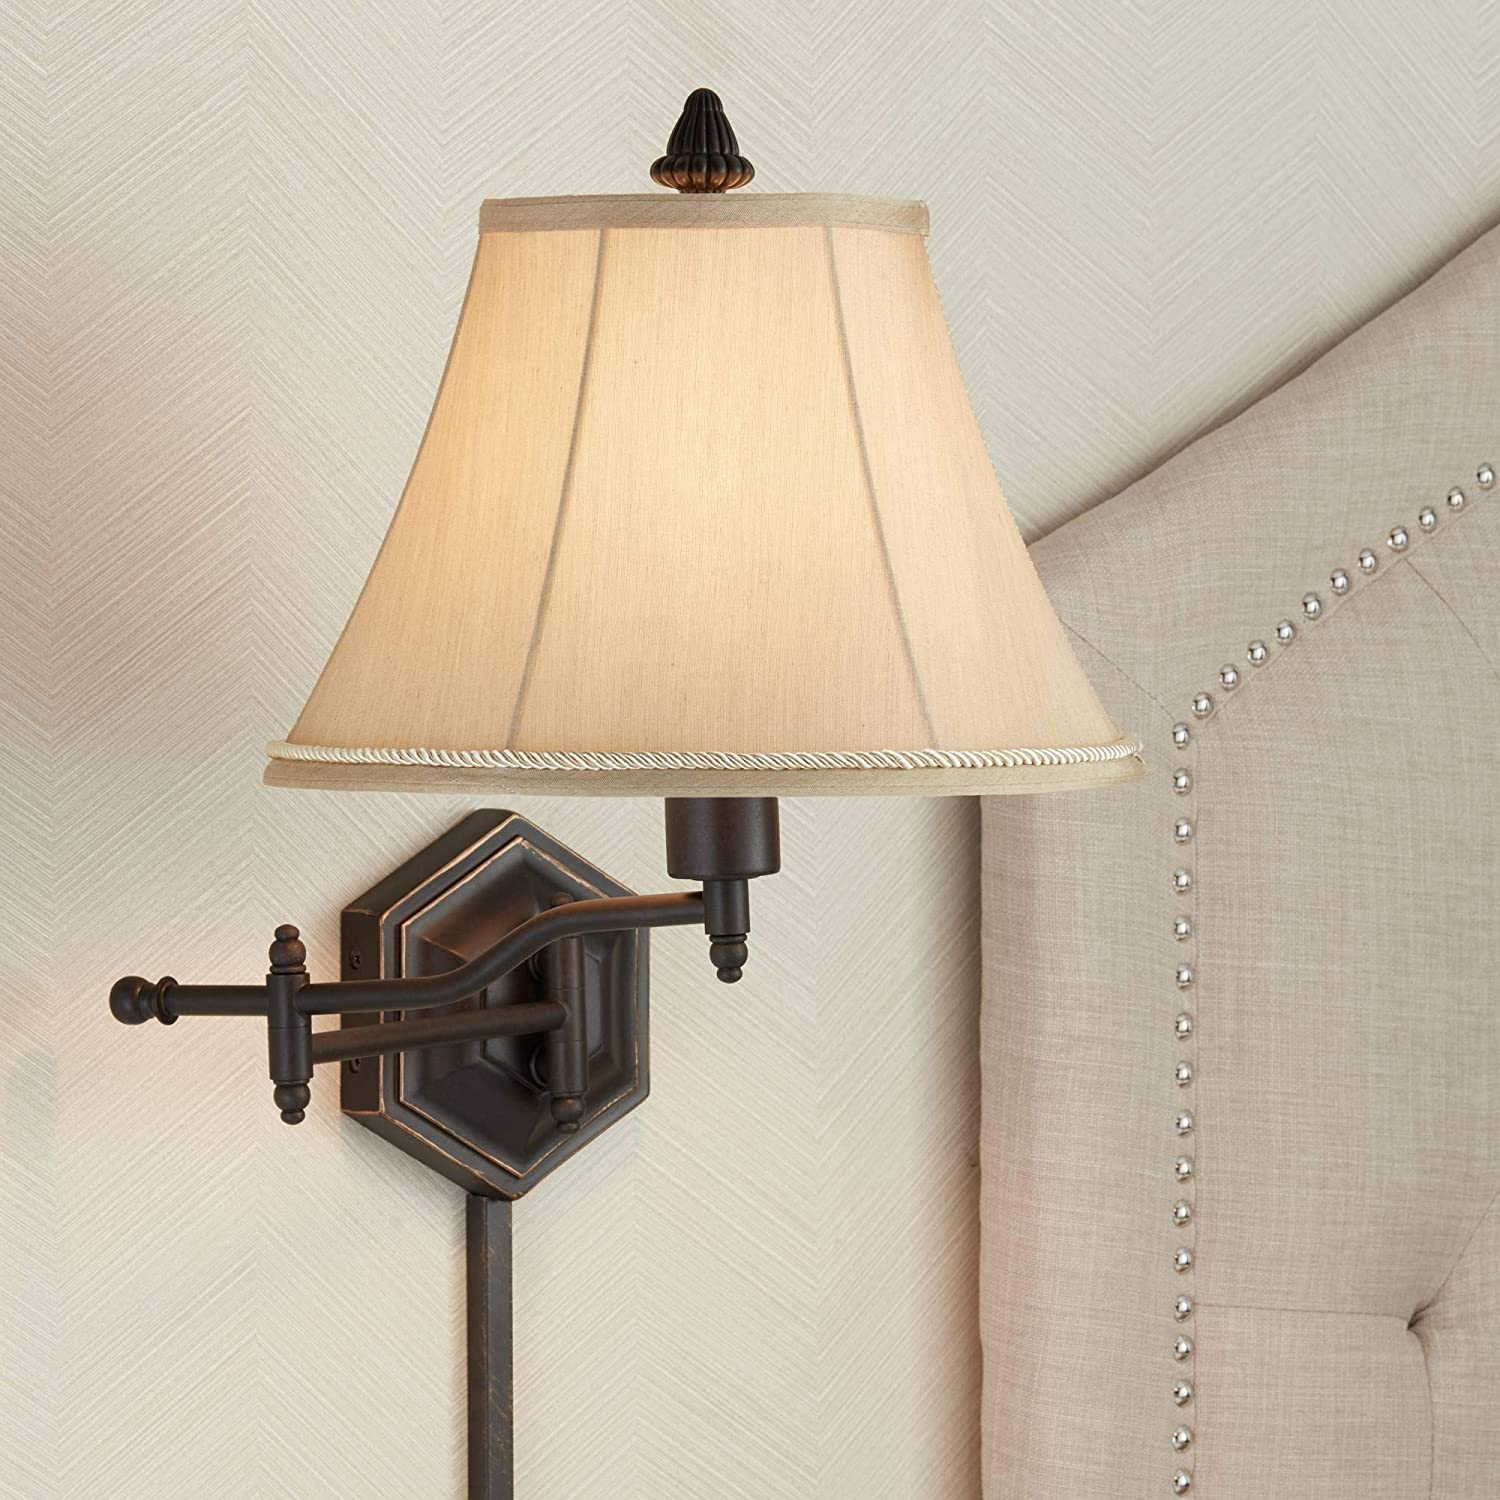 Hexagon Swing Arm Plug-in Wall Lamp by Barnes and Ivy